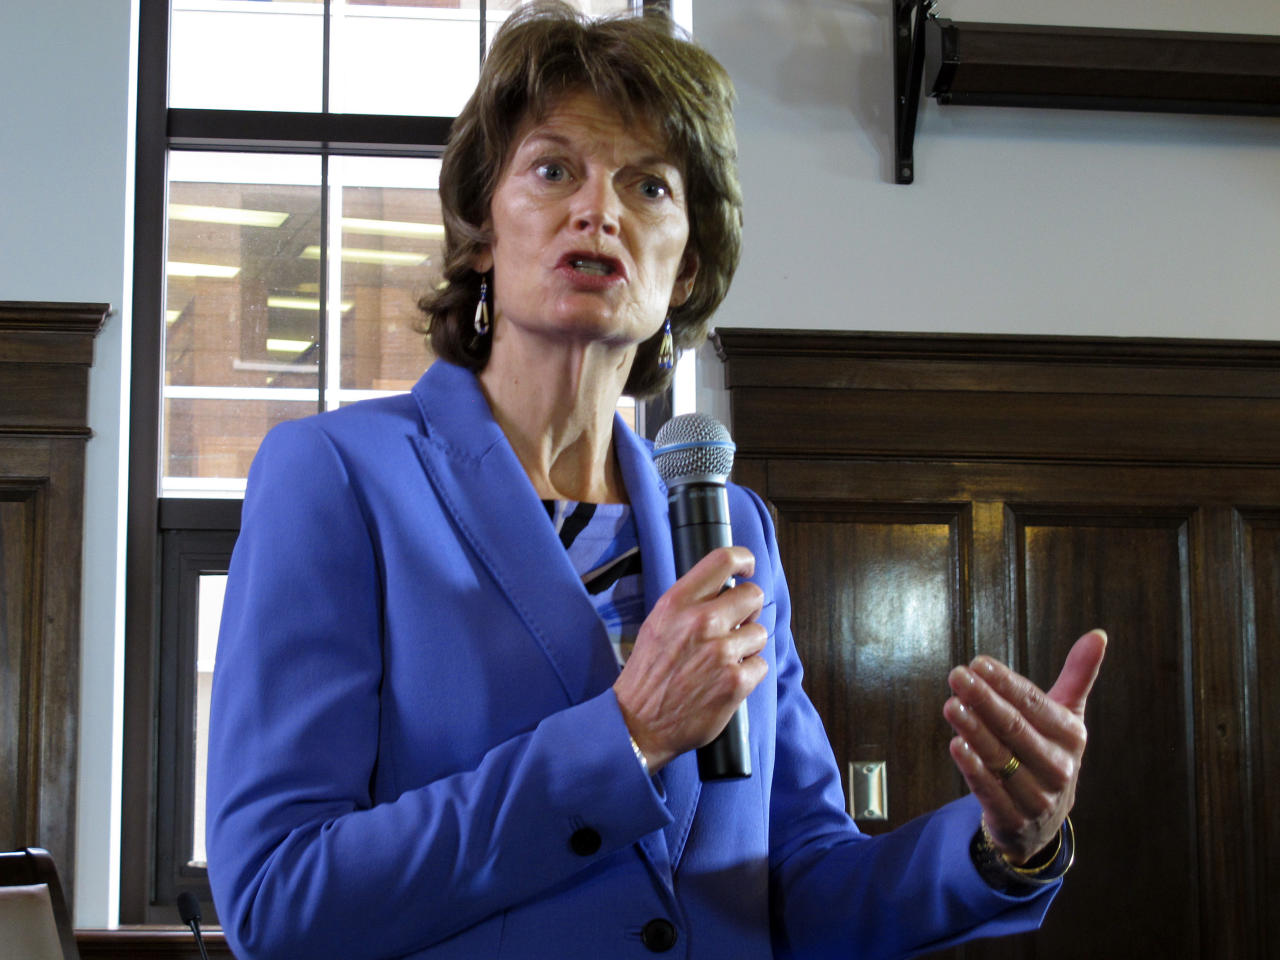 FILE - In this Feb. 22, 2017, file photo, Sen. Lisa Murkowski, R-Alaska, speaks during a news conference in Juneau, Alaska. For Majority Leader Mitch McConnell, writing a Republican-only health care bill that can pass the Senate boils down to this question: How do you solve a problem like Dean, Lisa, Patrick, Ted, Rand and Susan? (AP Photo/Becky Bohrer, File)